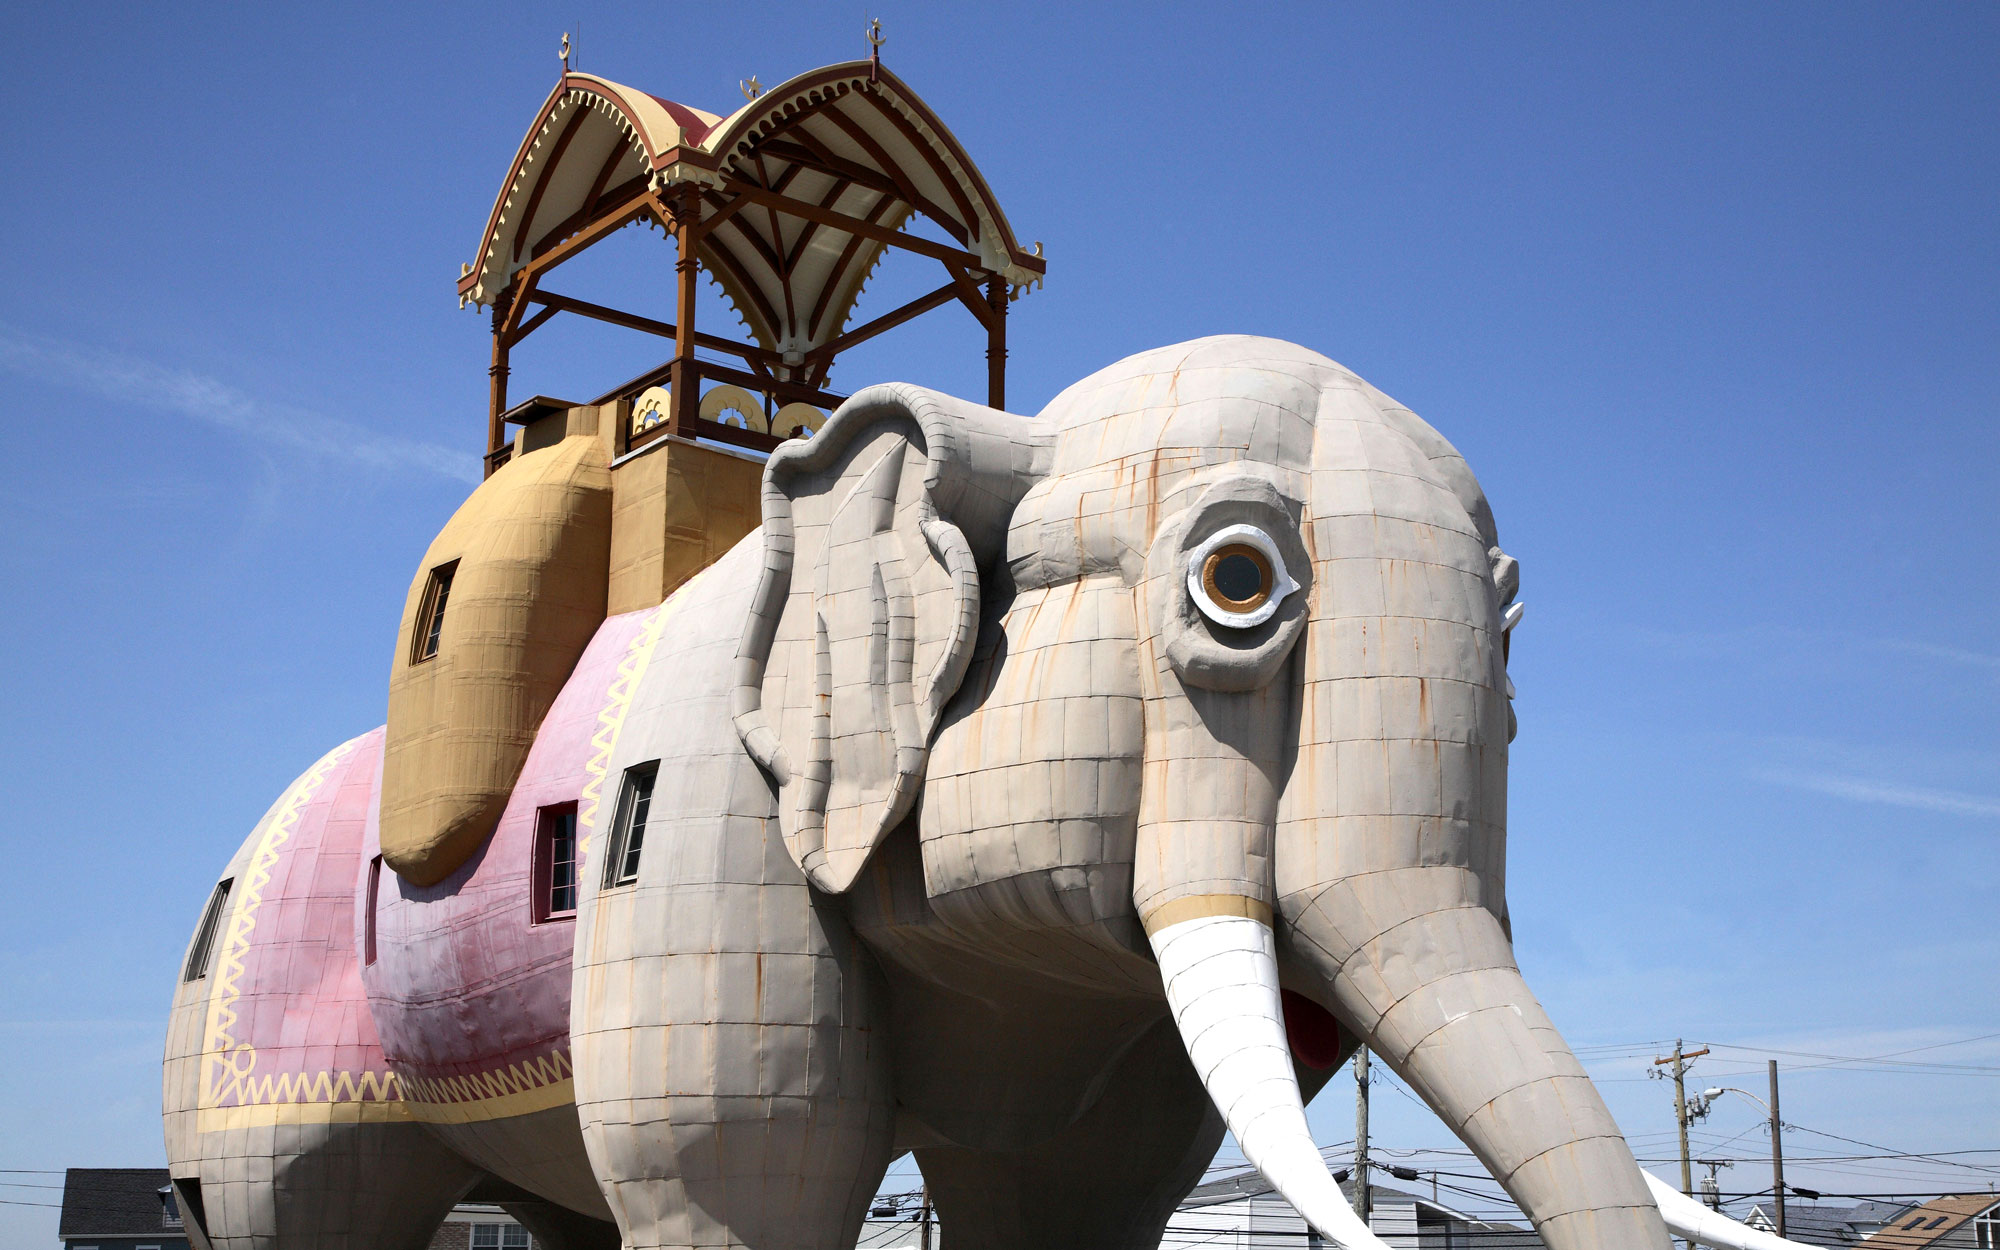 Weirdest Roadside Attractions: New Jersey: Lucy the Elephant